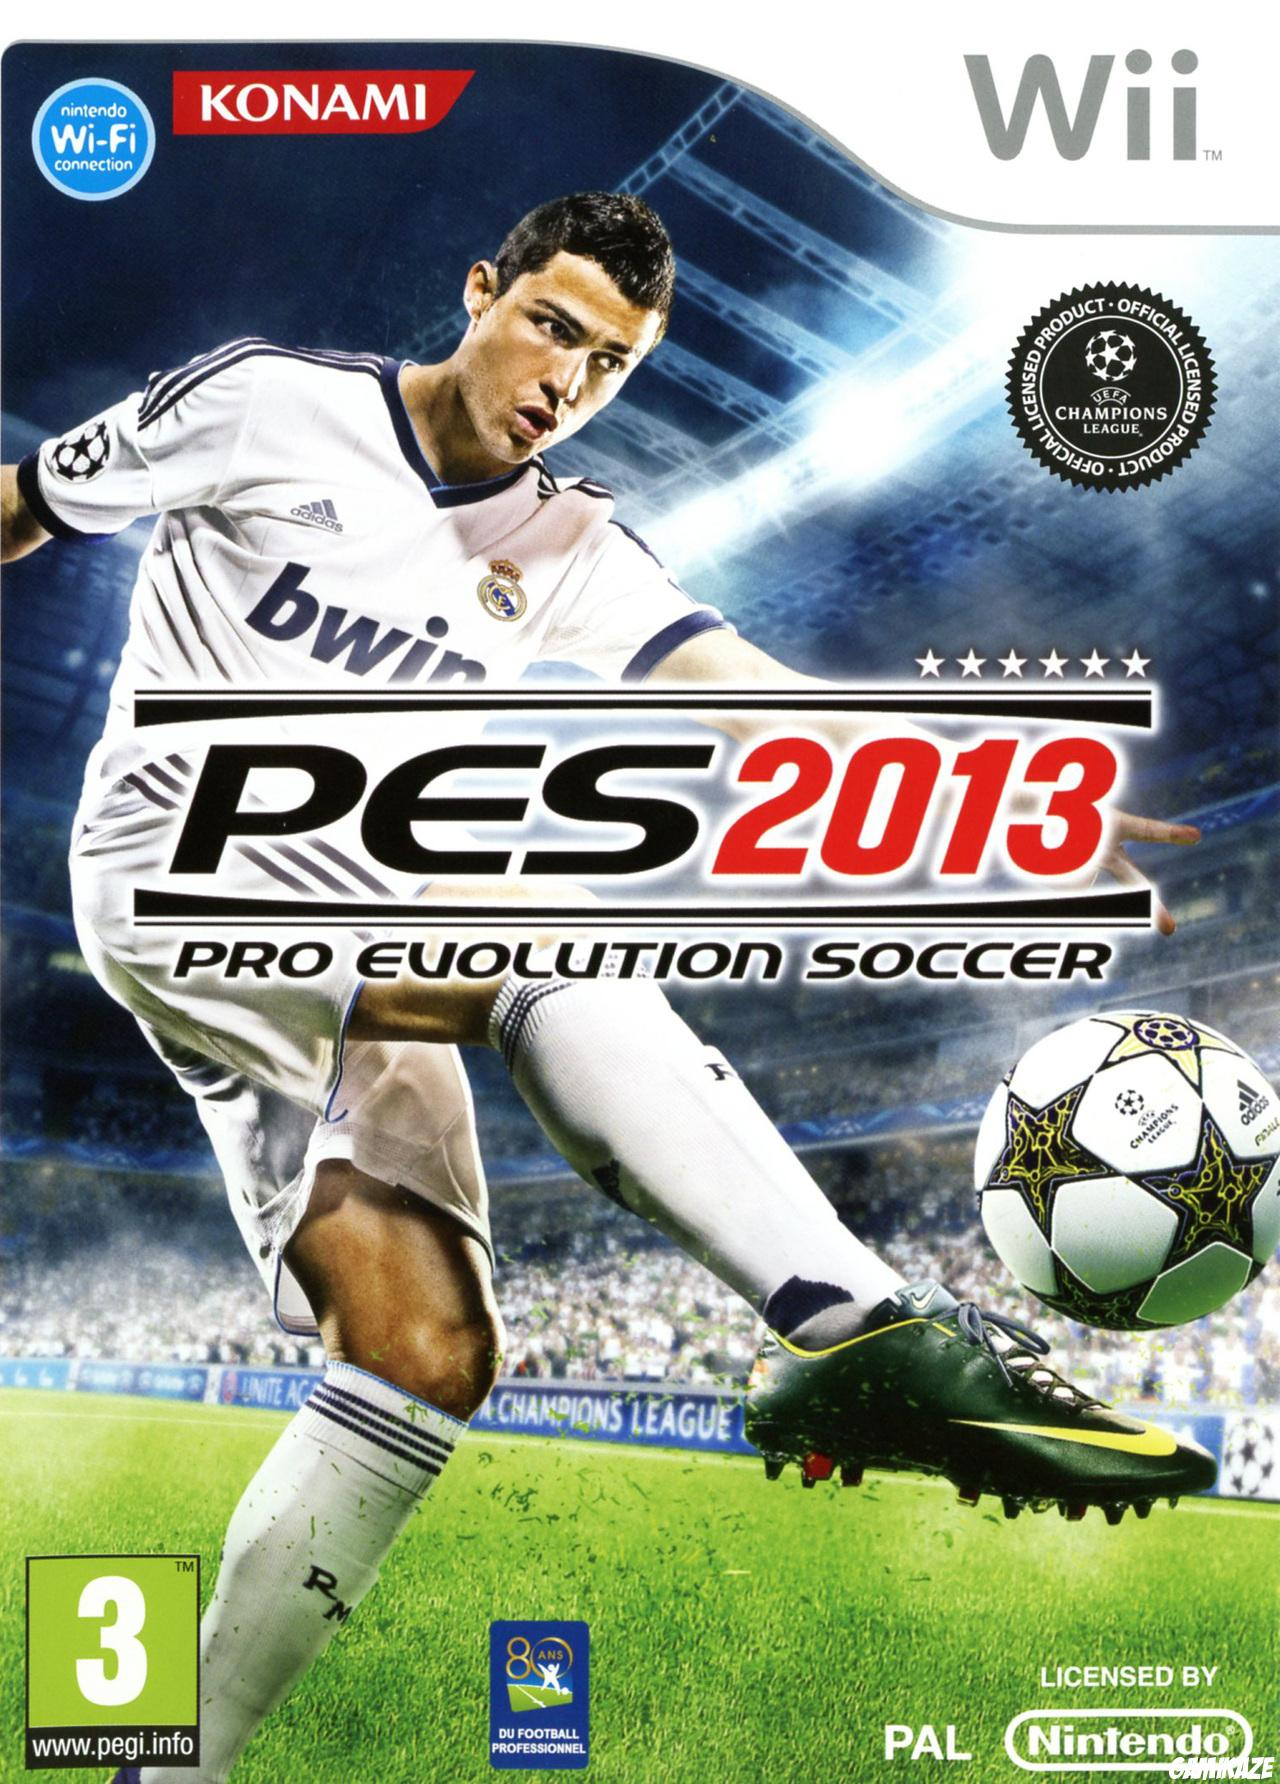 cover Pro Evolution Soccer 2013 wii